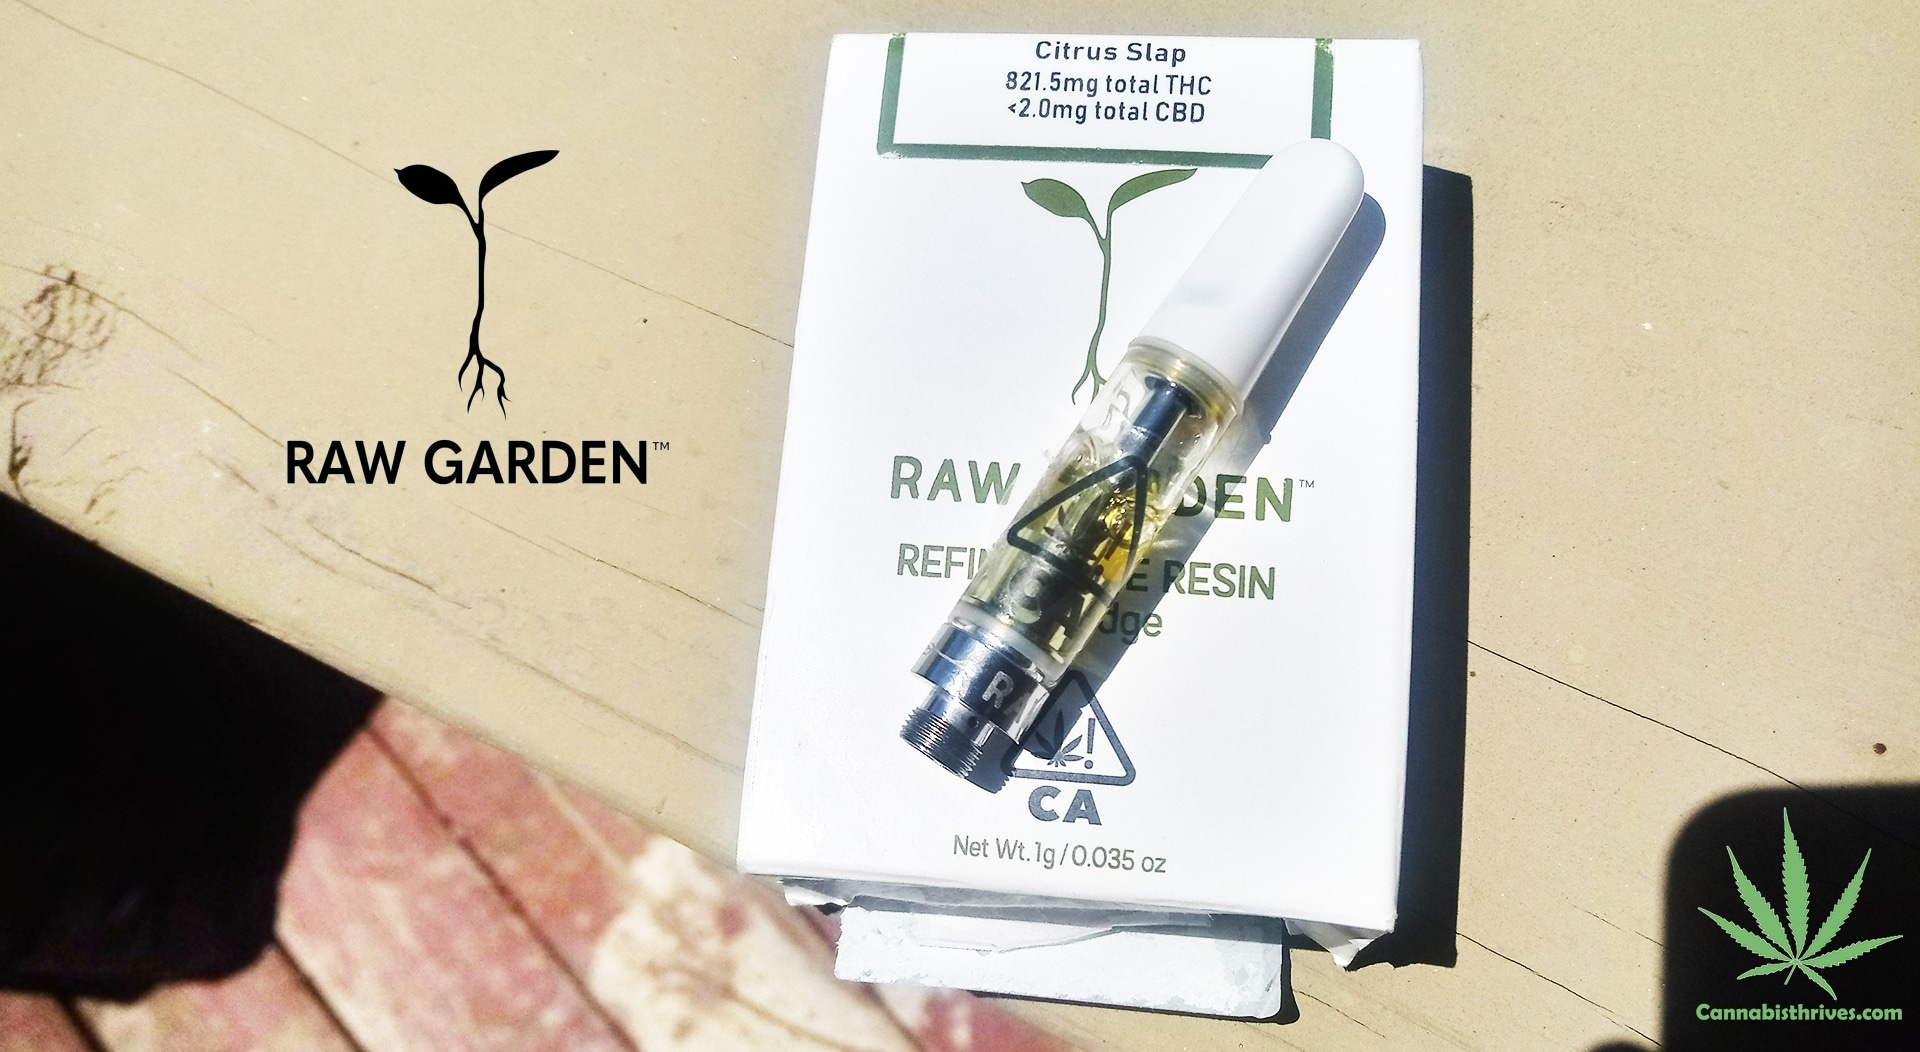 raw garden citrus slap